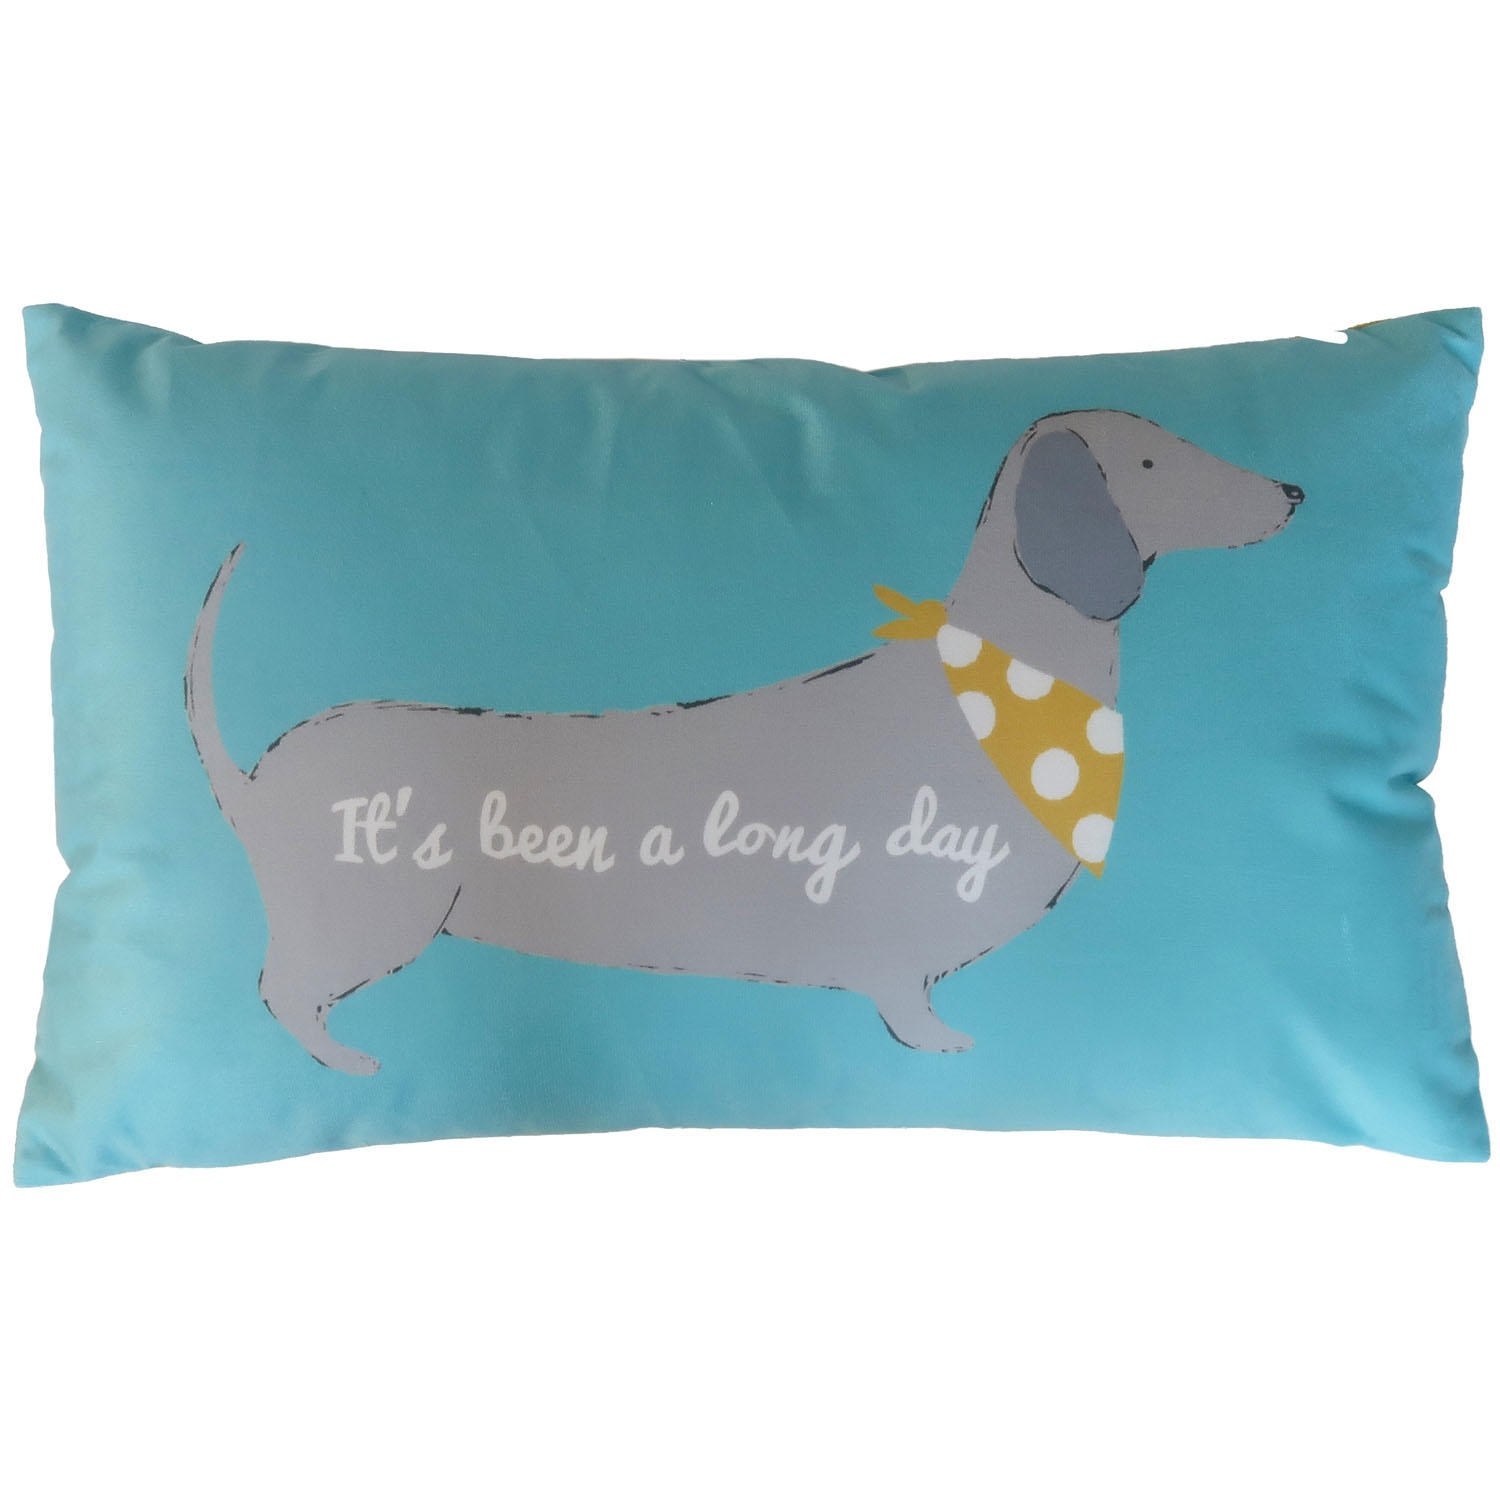 Image of Catherine Lansfield Cushion, 30cm x 50cm, Silly Sausage Dog